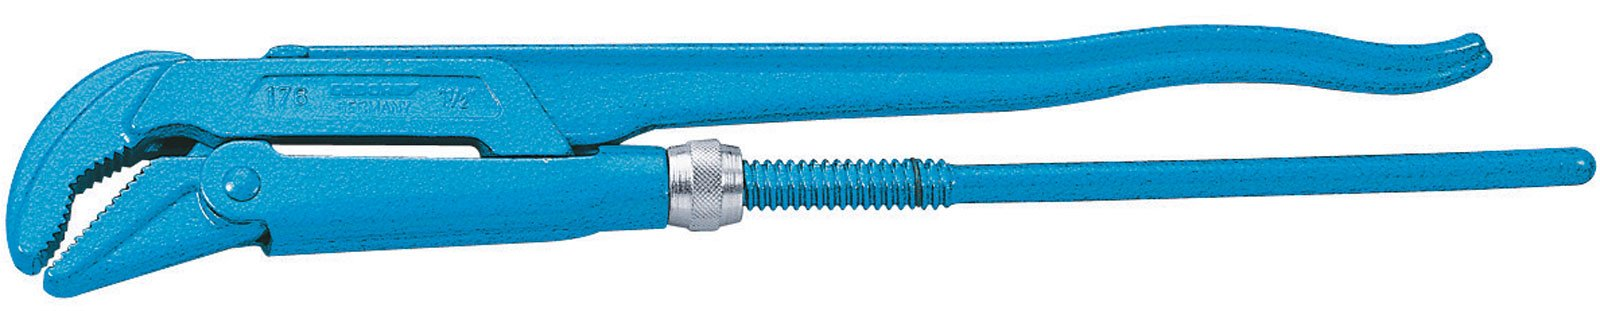 GEDORE 1761.1 Elbow Pipe Wrench, 1'' Pipe Diameter